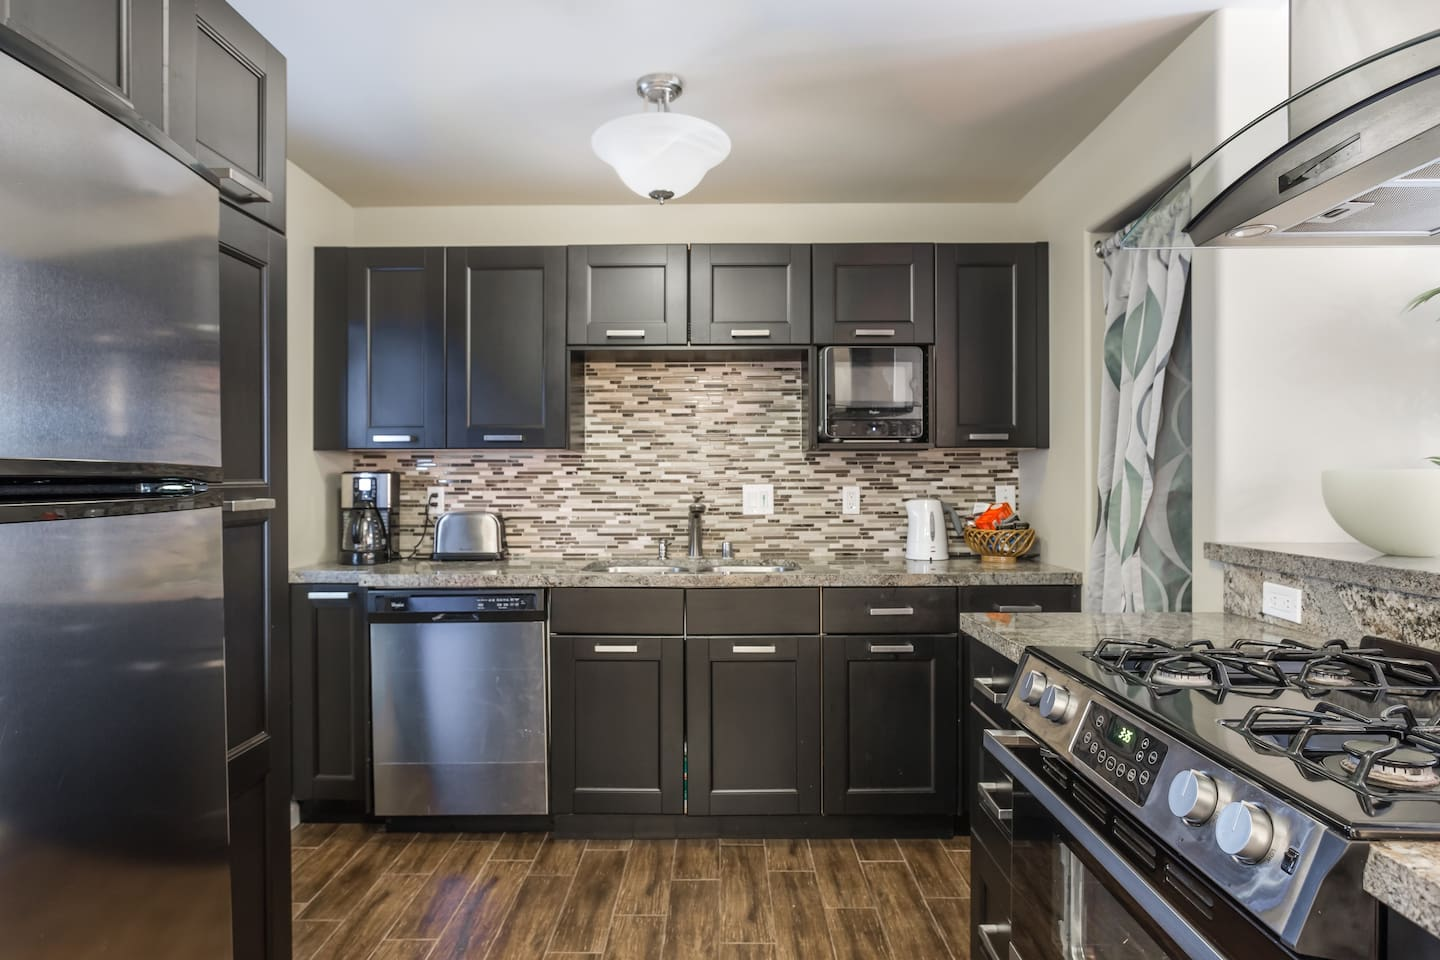 Stay at this nice apartment with brand new kitchen with all stainless steel appliances, stone counter top and Italian tile floors. With all the amenities you might need while traveling.